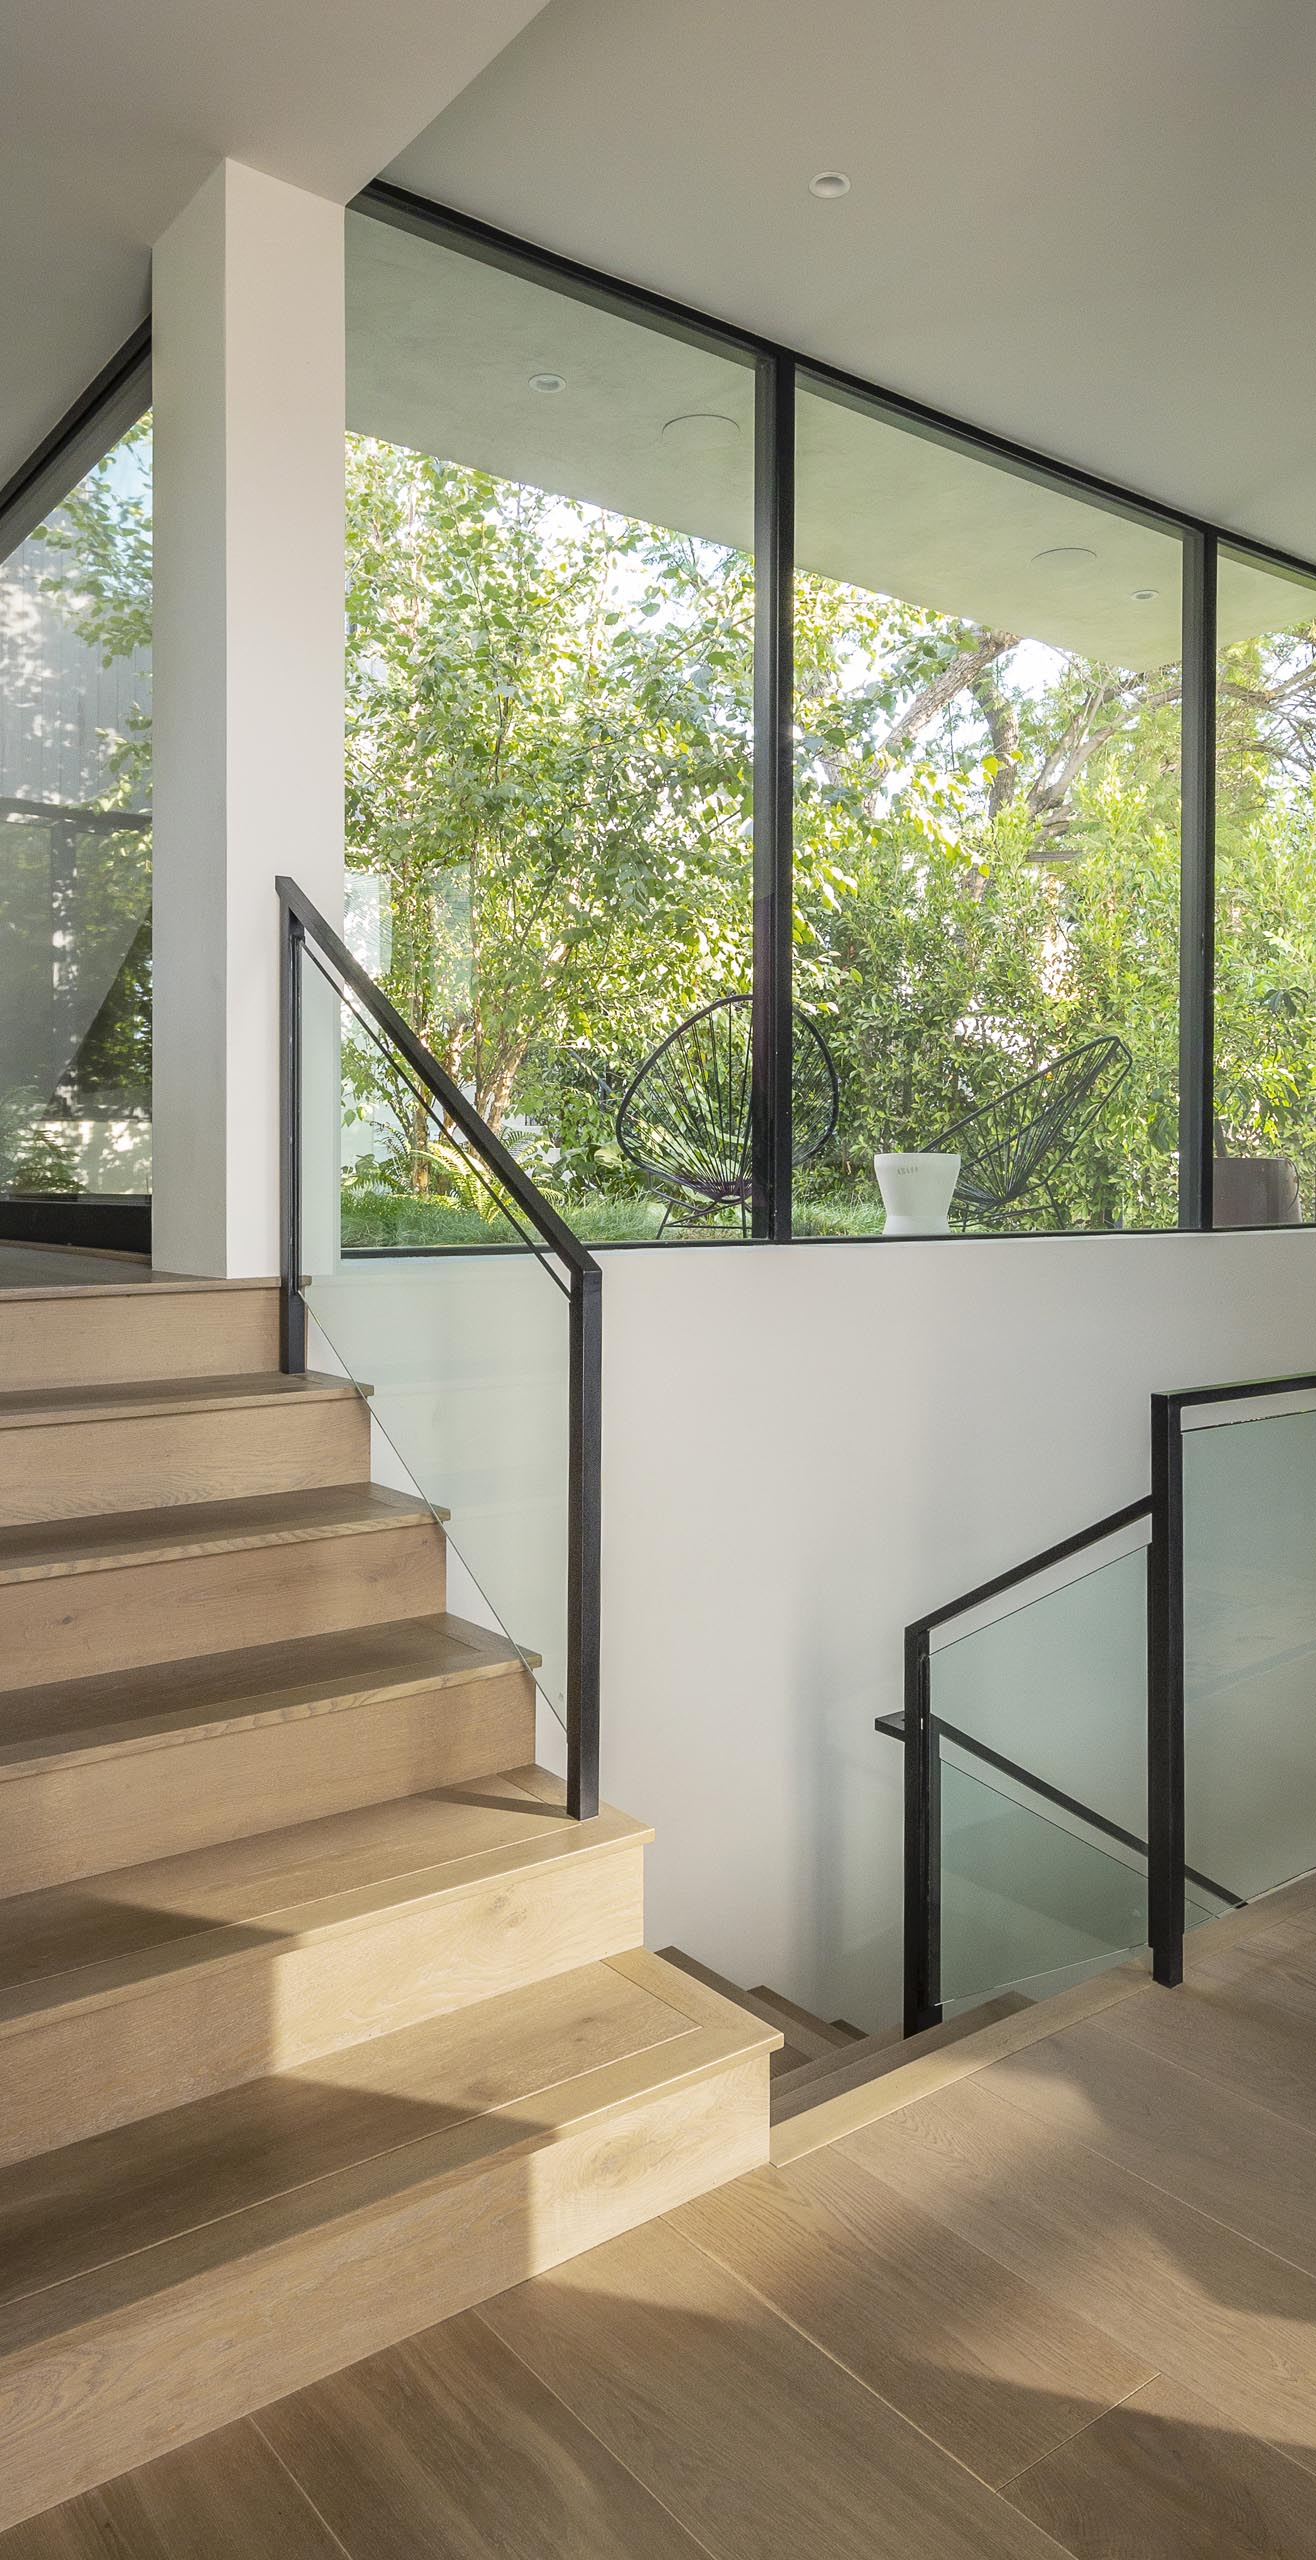 Connecting the various levels of this modern house are wood stairs that have a glass and metal railing.